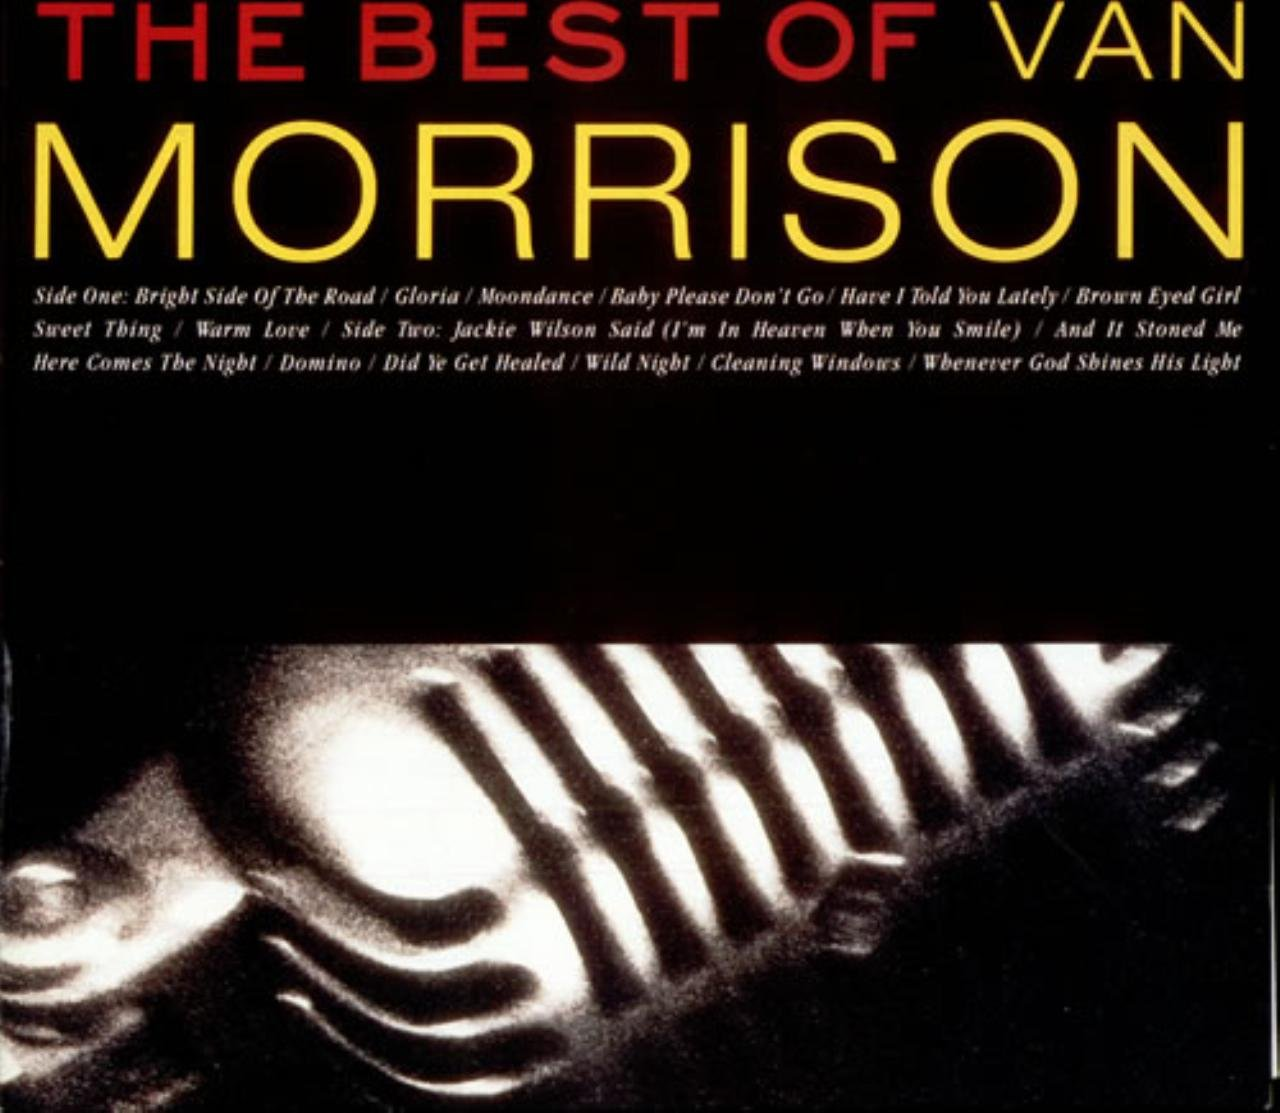 The Best of Van Morrison [Vinyl]